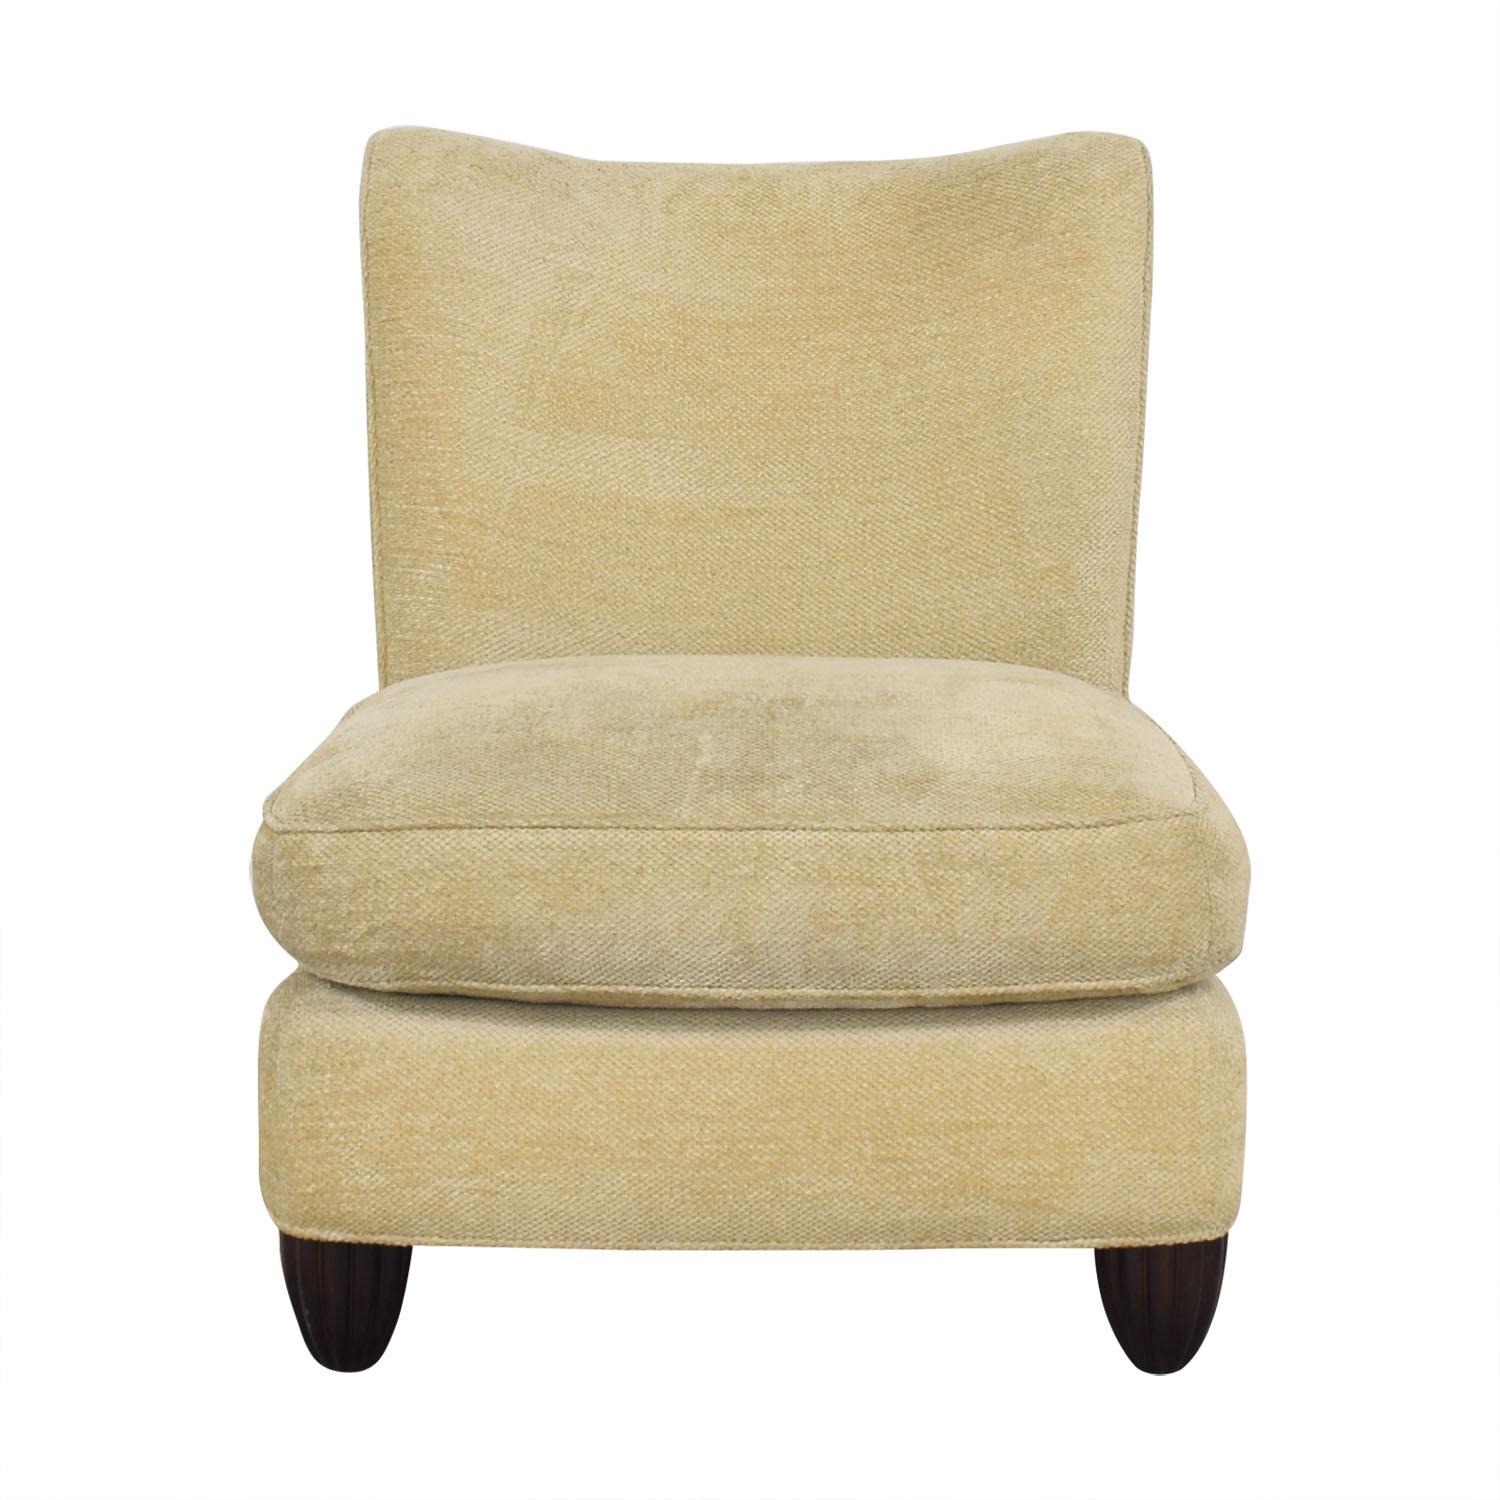 Baker Furniture Baker Furniture Barbara Barry Slipper Chair ma